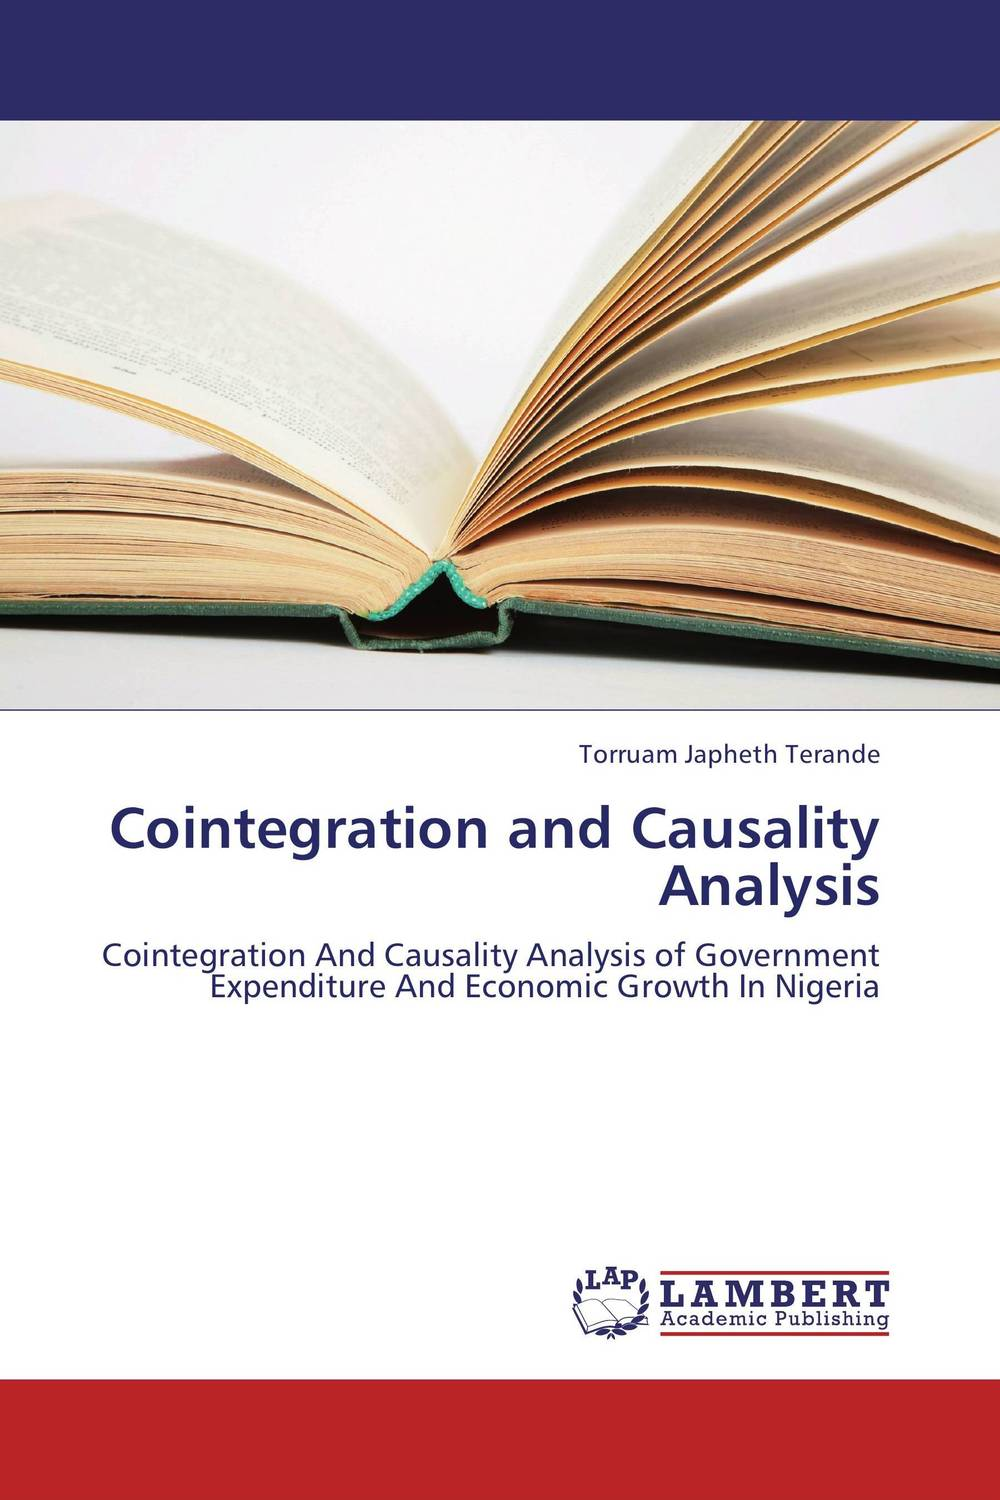 Cointegration and Causality Analysis t omay energy consumption and economic growth evidence from nonlinear panel cointegration and causality tests